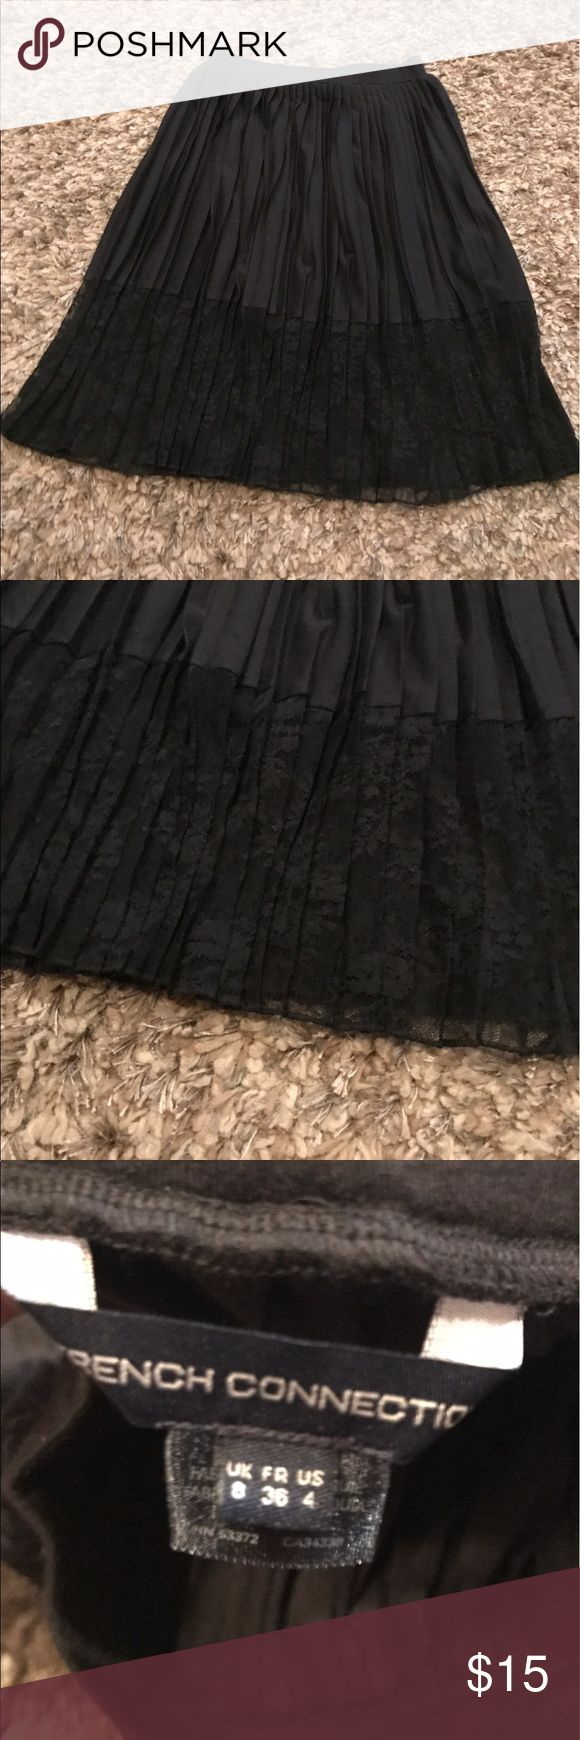 French Connection skirt French connection black skirt with lace bottom in good condition no rips tears or stains French Connection Skirts A-Line or Full